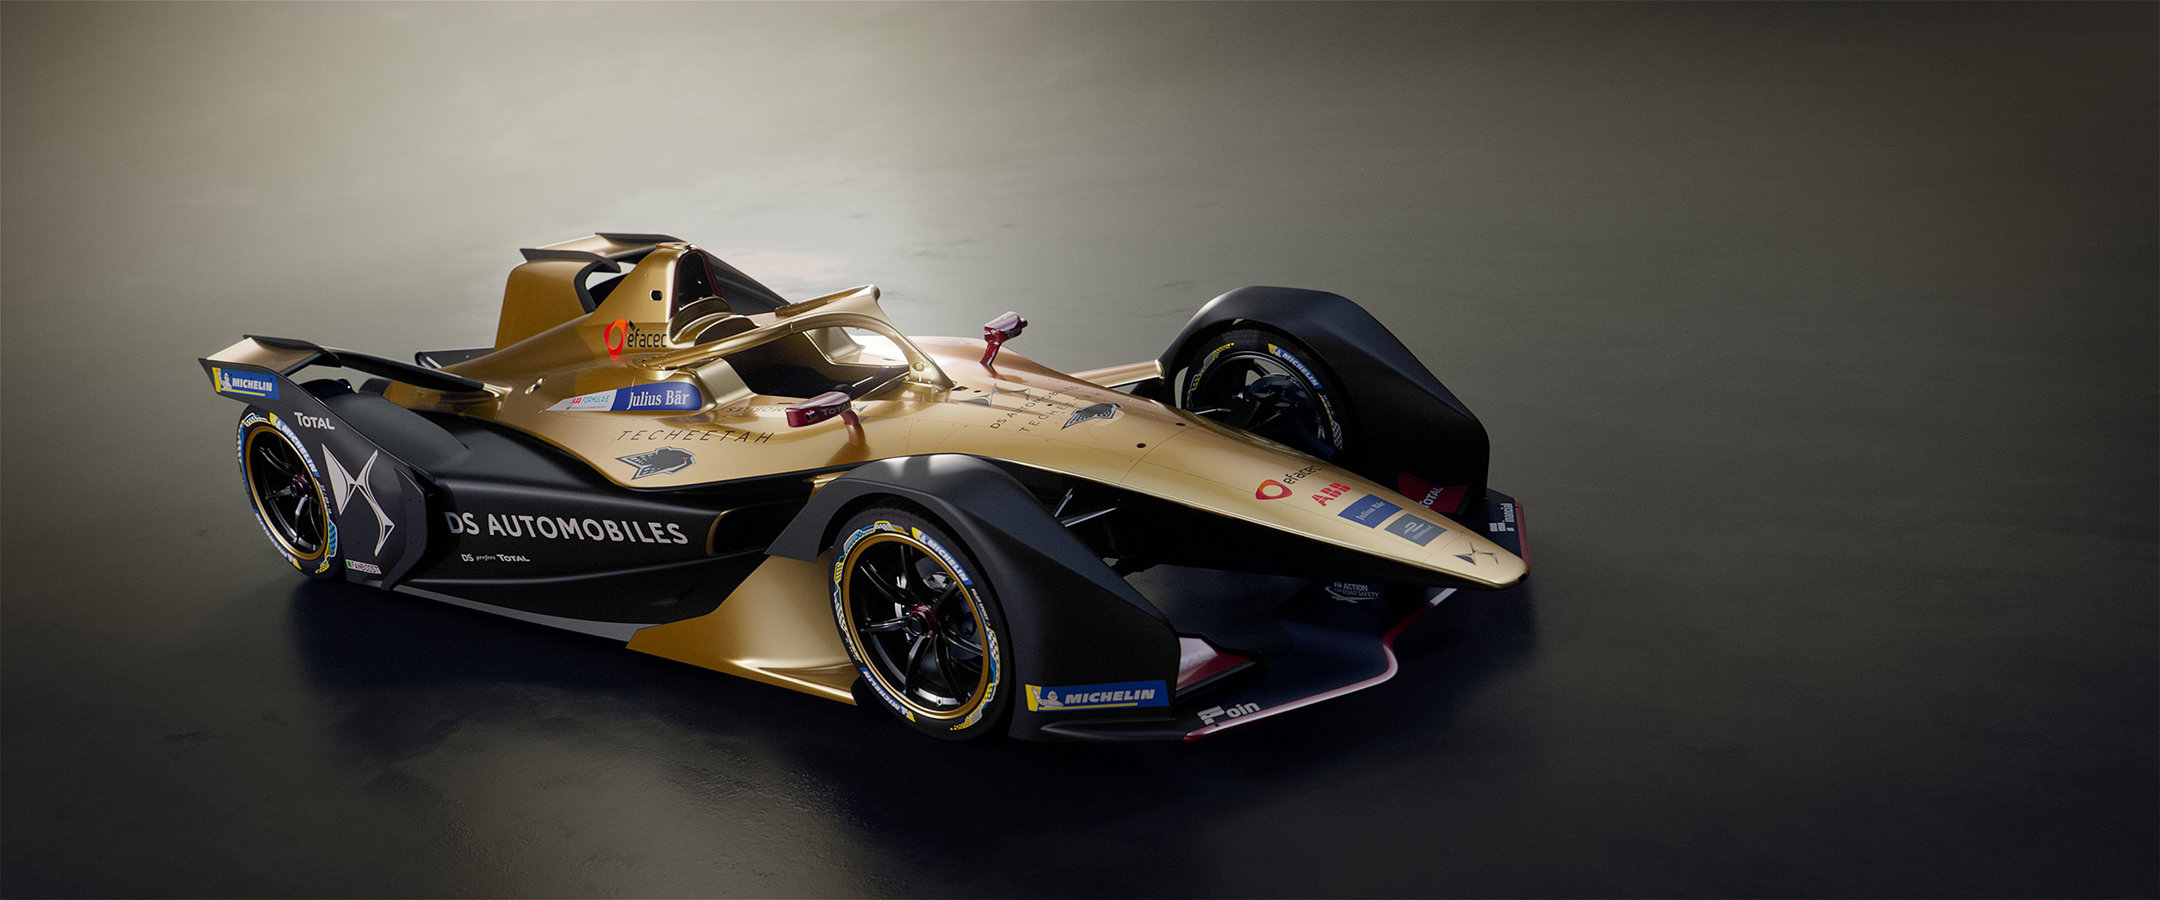 DS Techeetah E-TENSE - FormulaE 2018/2019 - front side-face